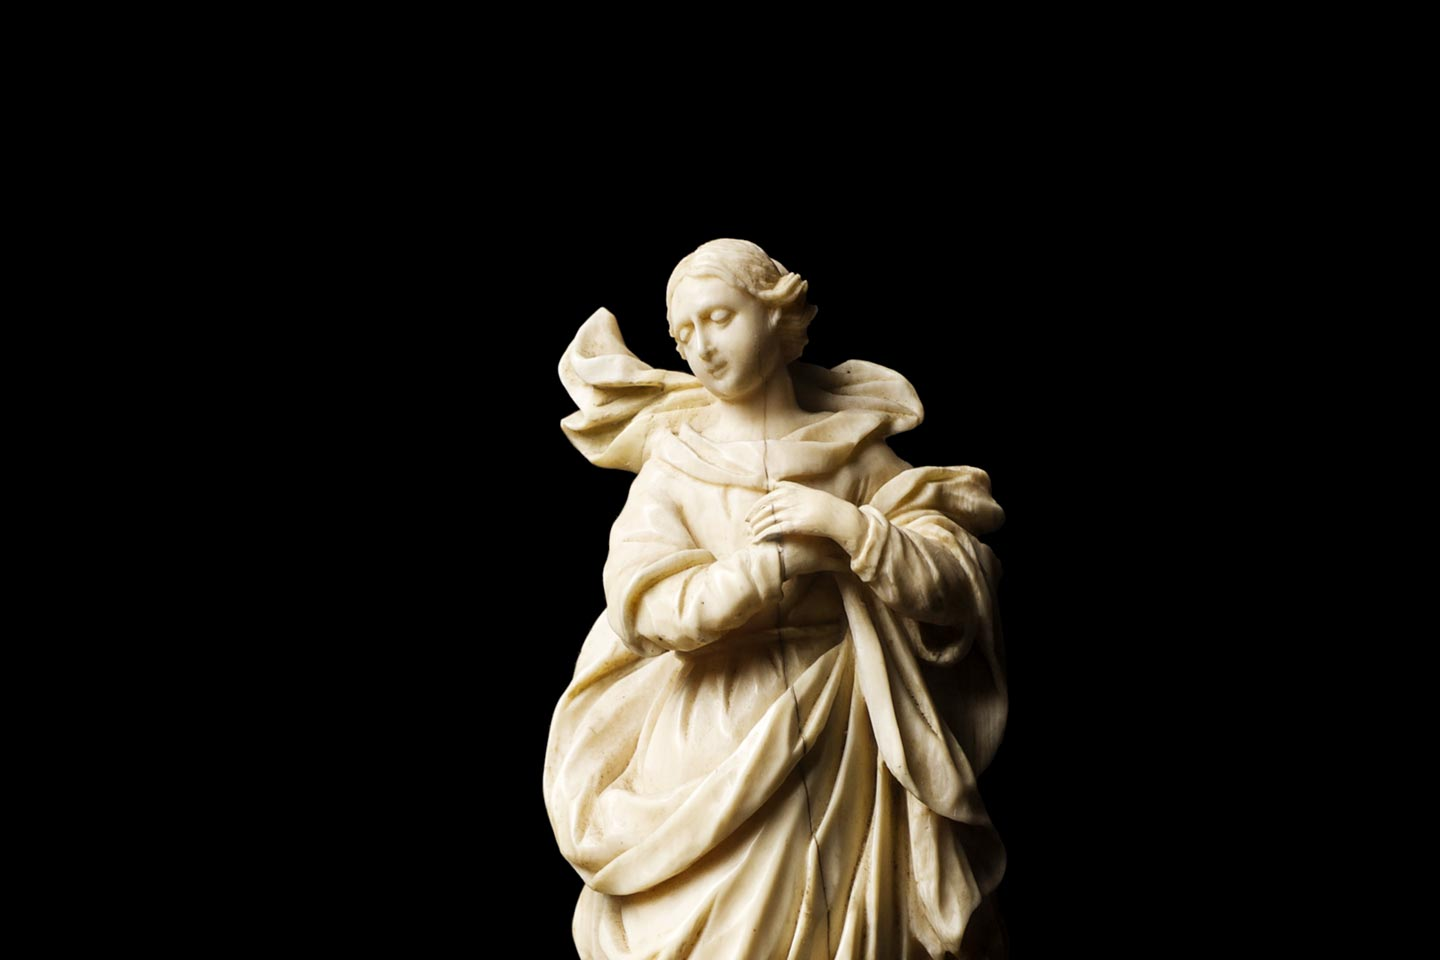 Vergin of the Immaculate Conception from Private Collection, Baroque Art, 18th Century